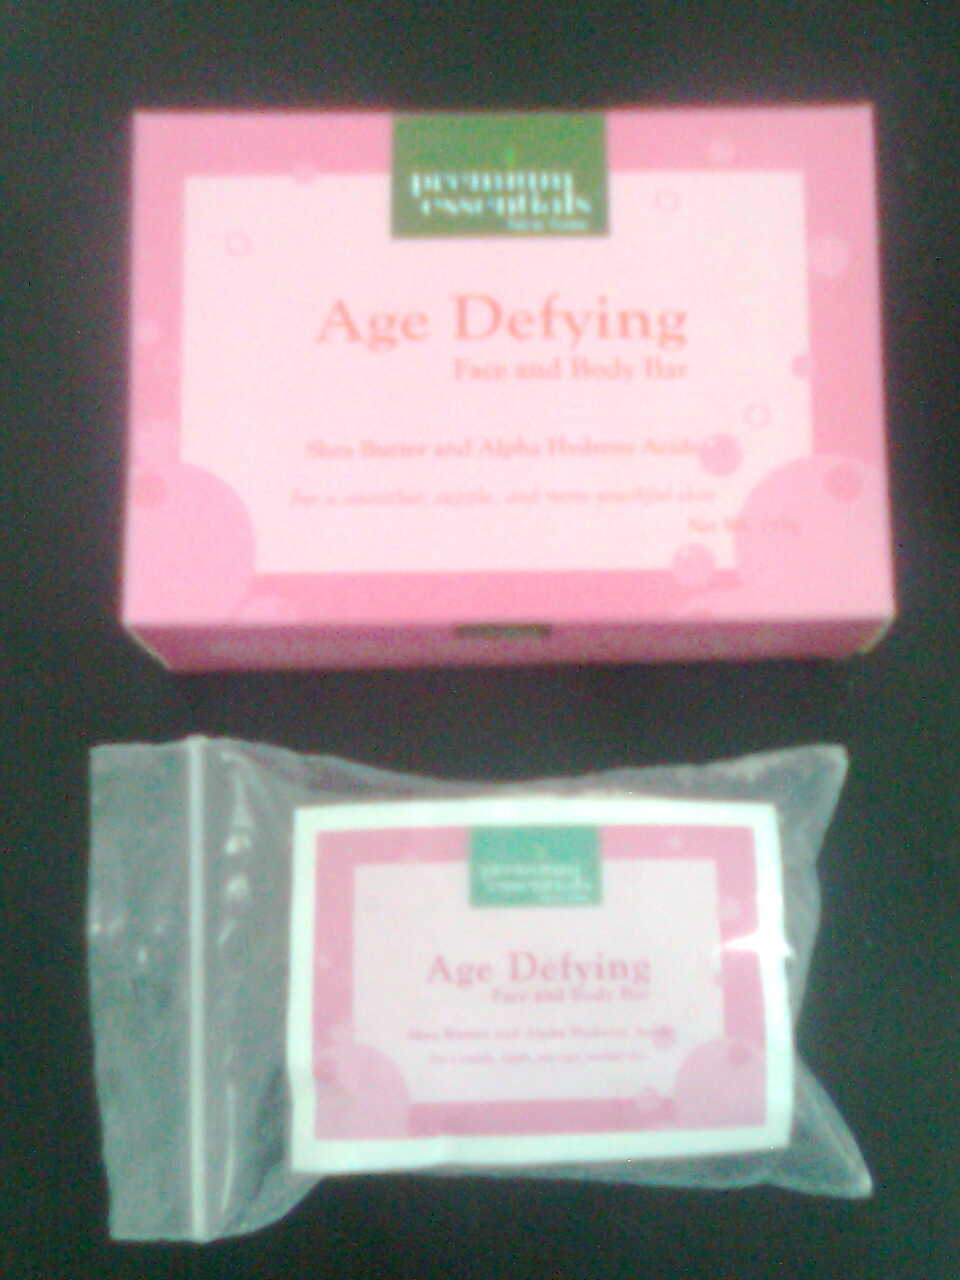 FOR SALE: AGE DEFYING (135G)